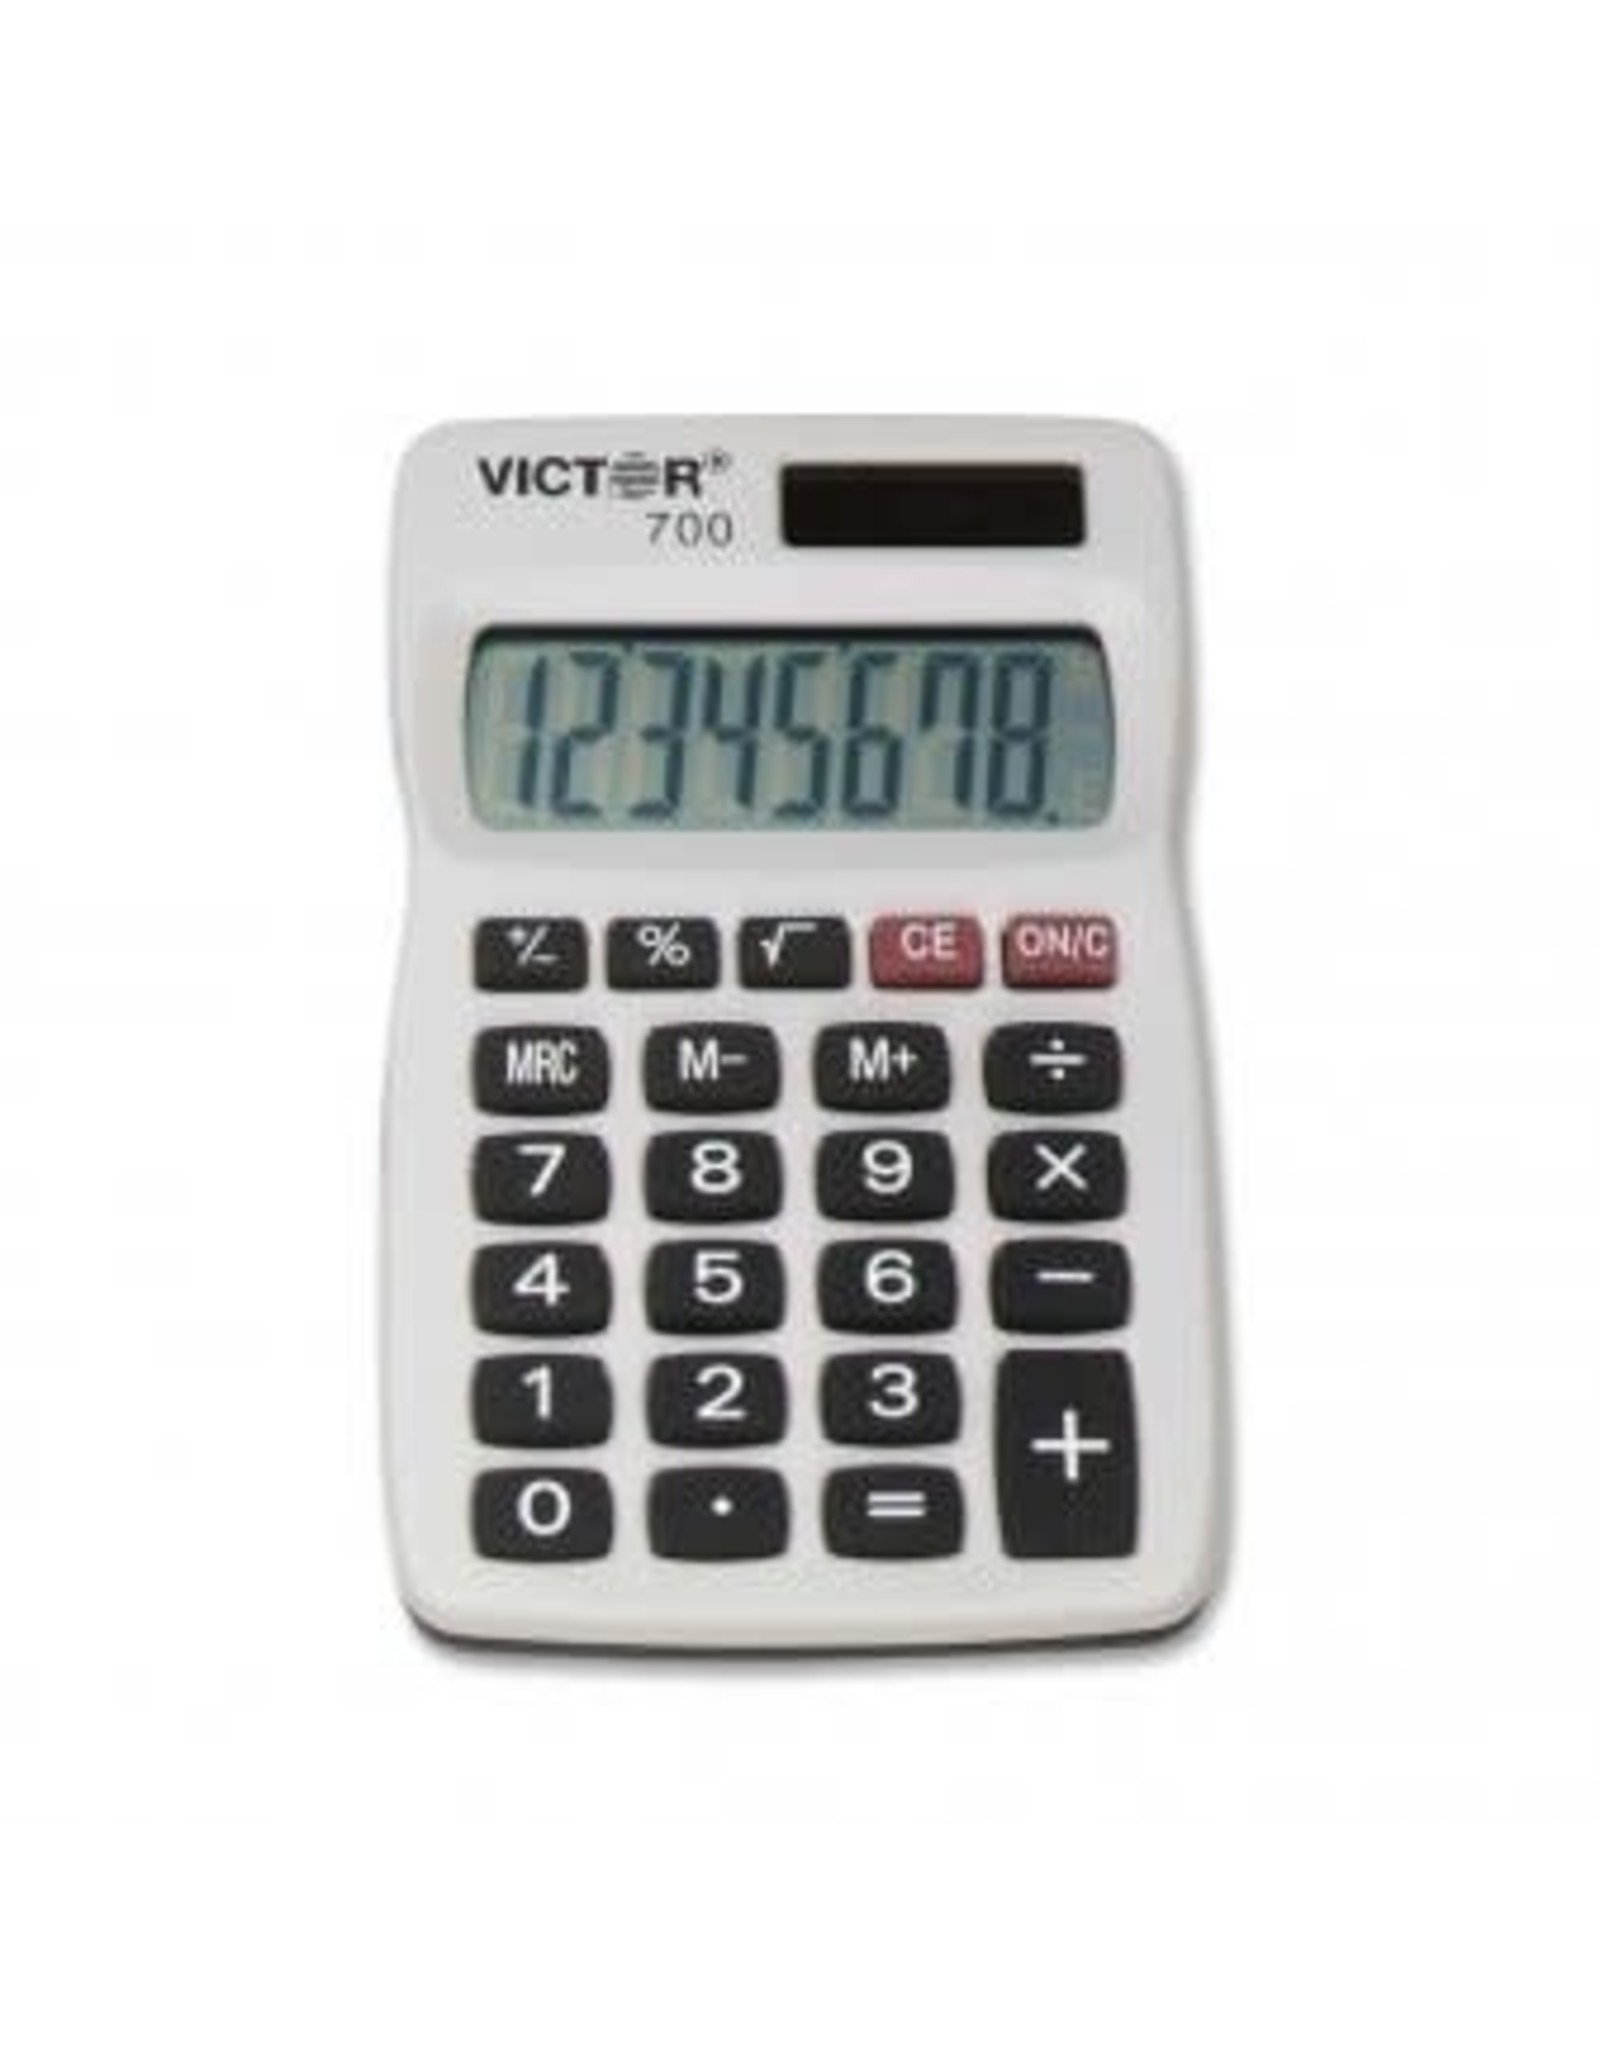 Victor Technology CALCULATOR-HANDHELD SOLAR/BATTERY 8 DIGIT X-LARGE DISPLAY